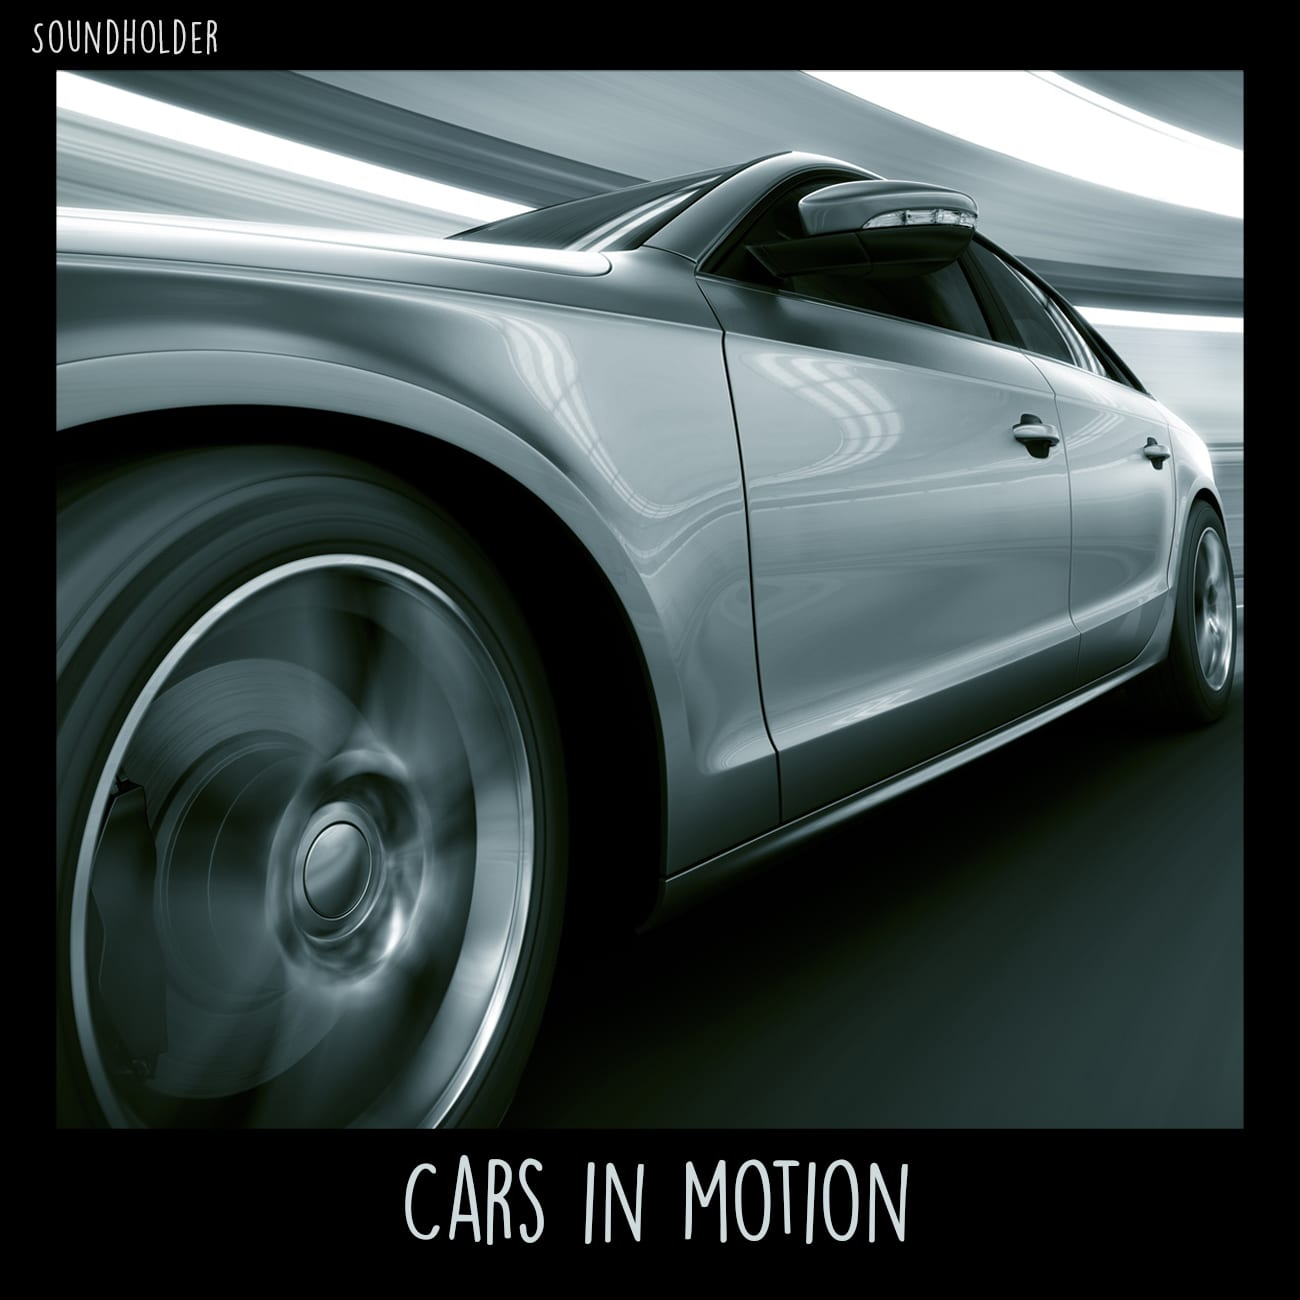 Cars-In-Motion_ASFX